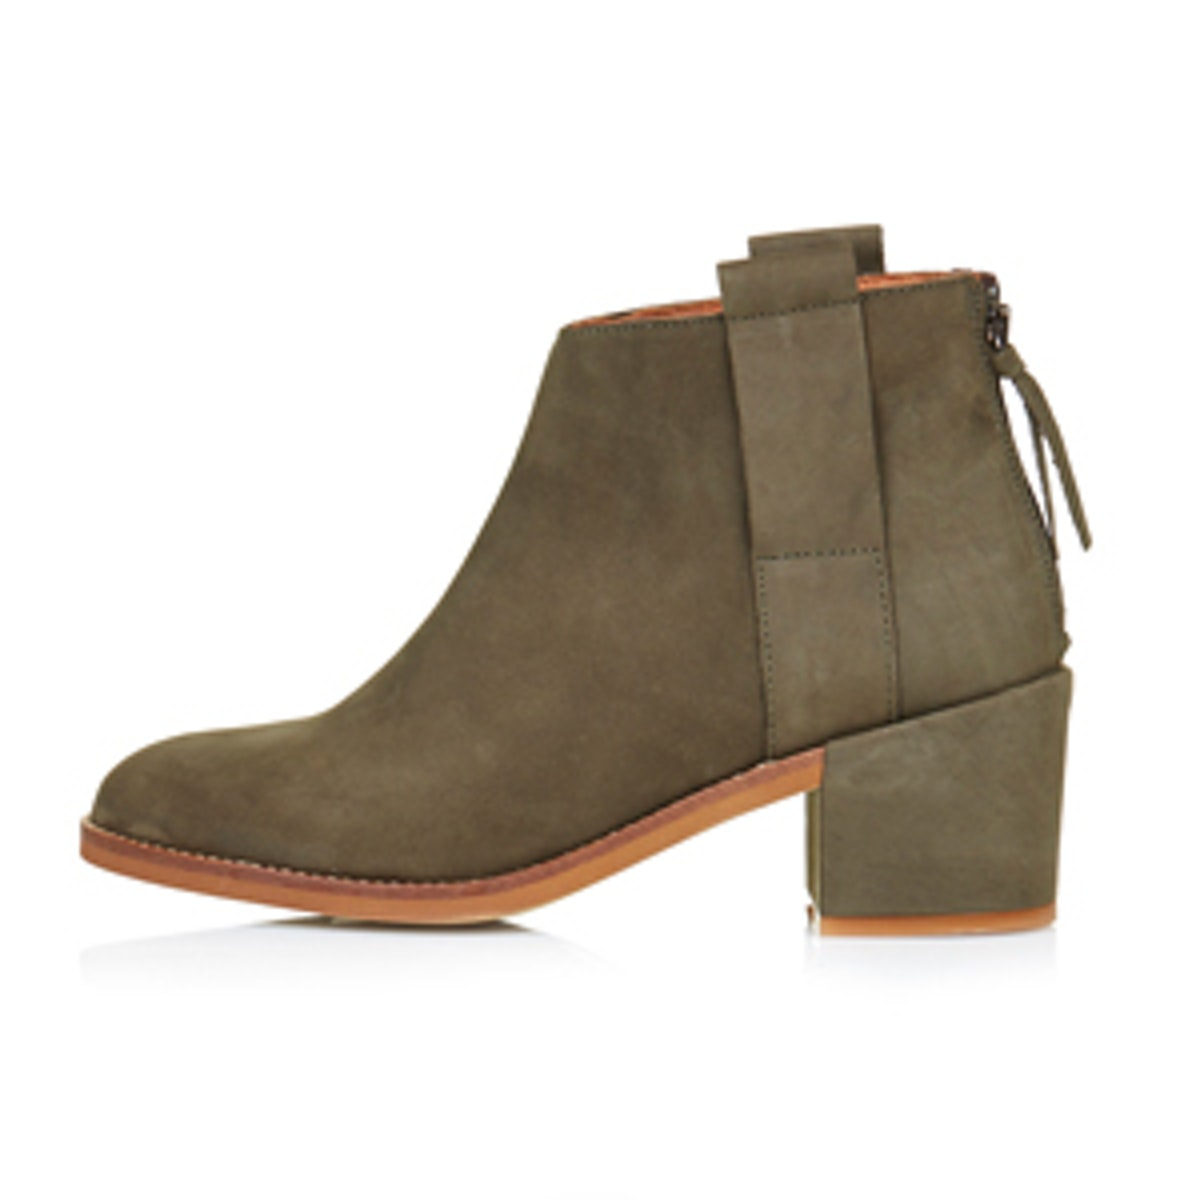 Murcia Ankle Boots